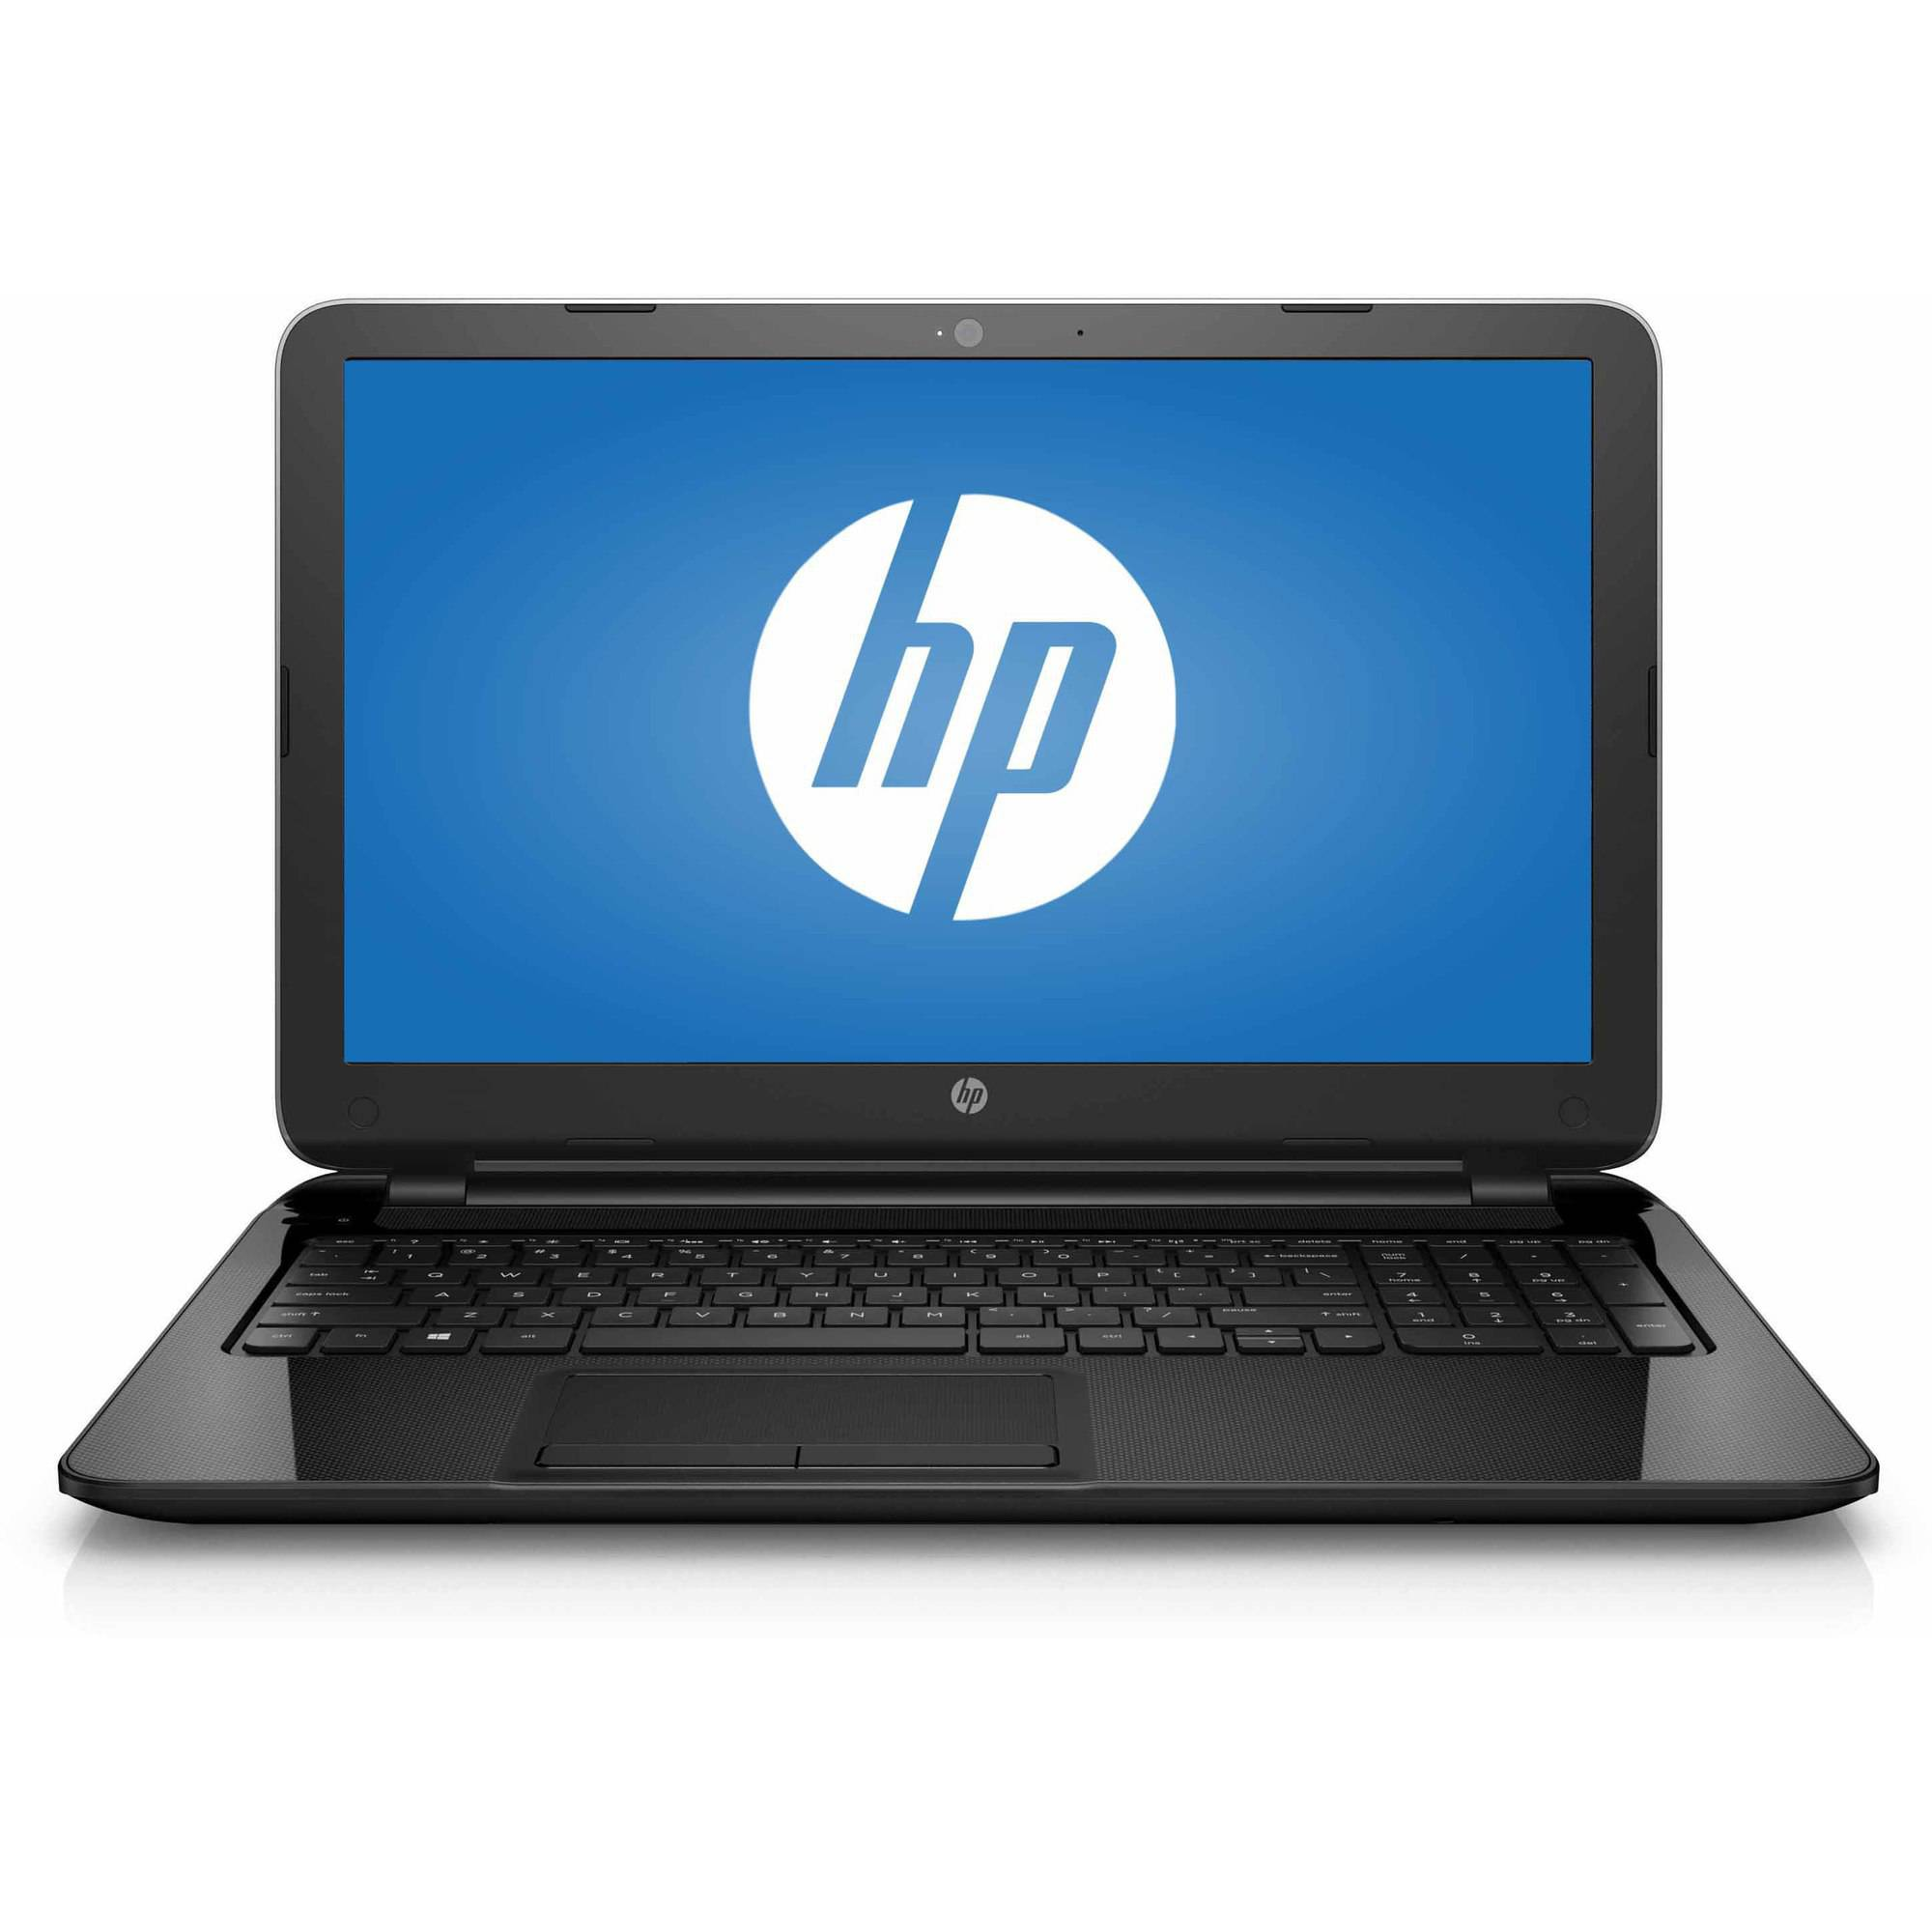 "Refurbished HP Black 15.6"" 15-f233wm Laptop PC with Intel Celeron N3050 Processor, 4GB Memory, 500GB Hard Drive and Windows 10 Home"